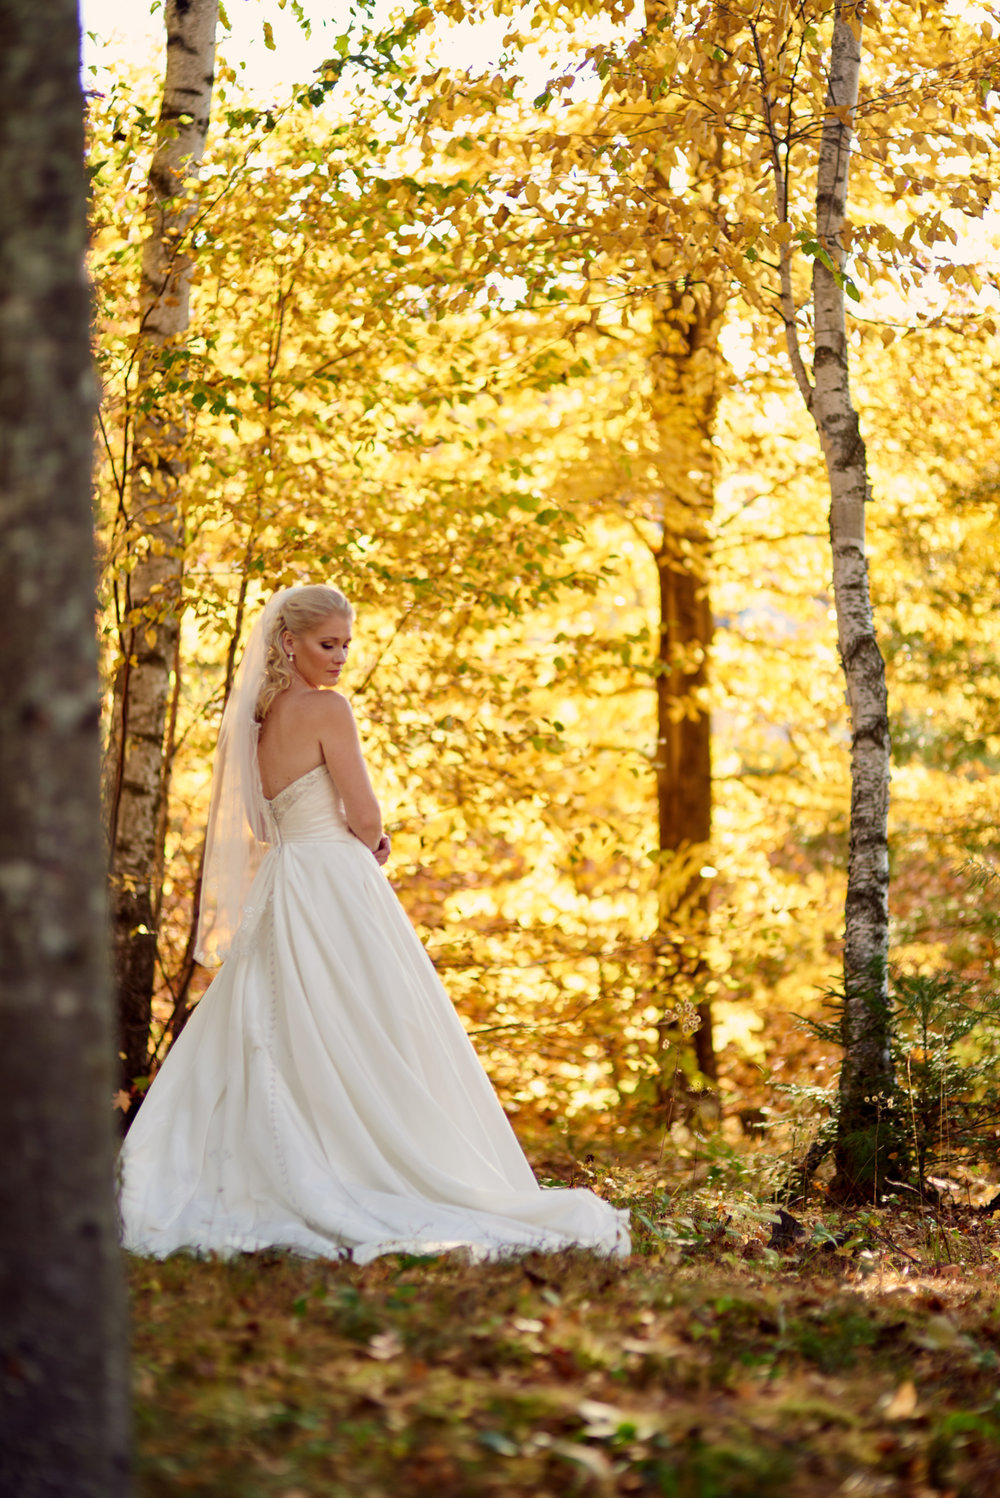 Melissa and Jonathan's White Mountain wedding at Attitash Grand Summit Resort in Barlett, New Hampshire